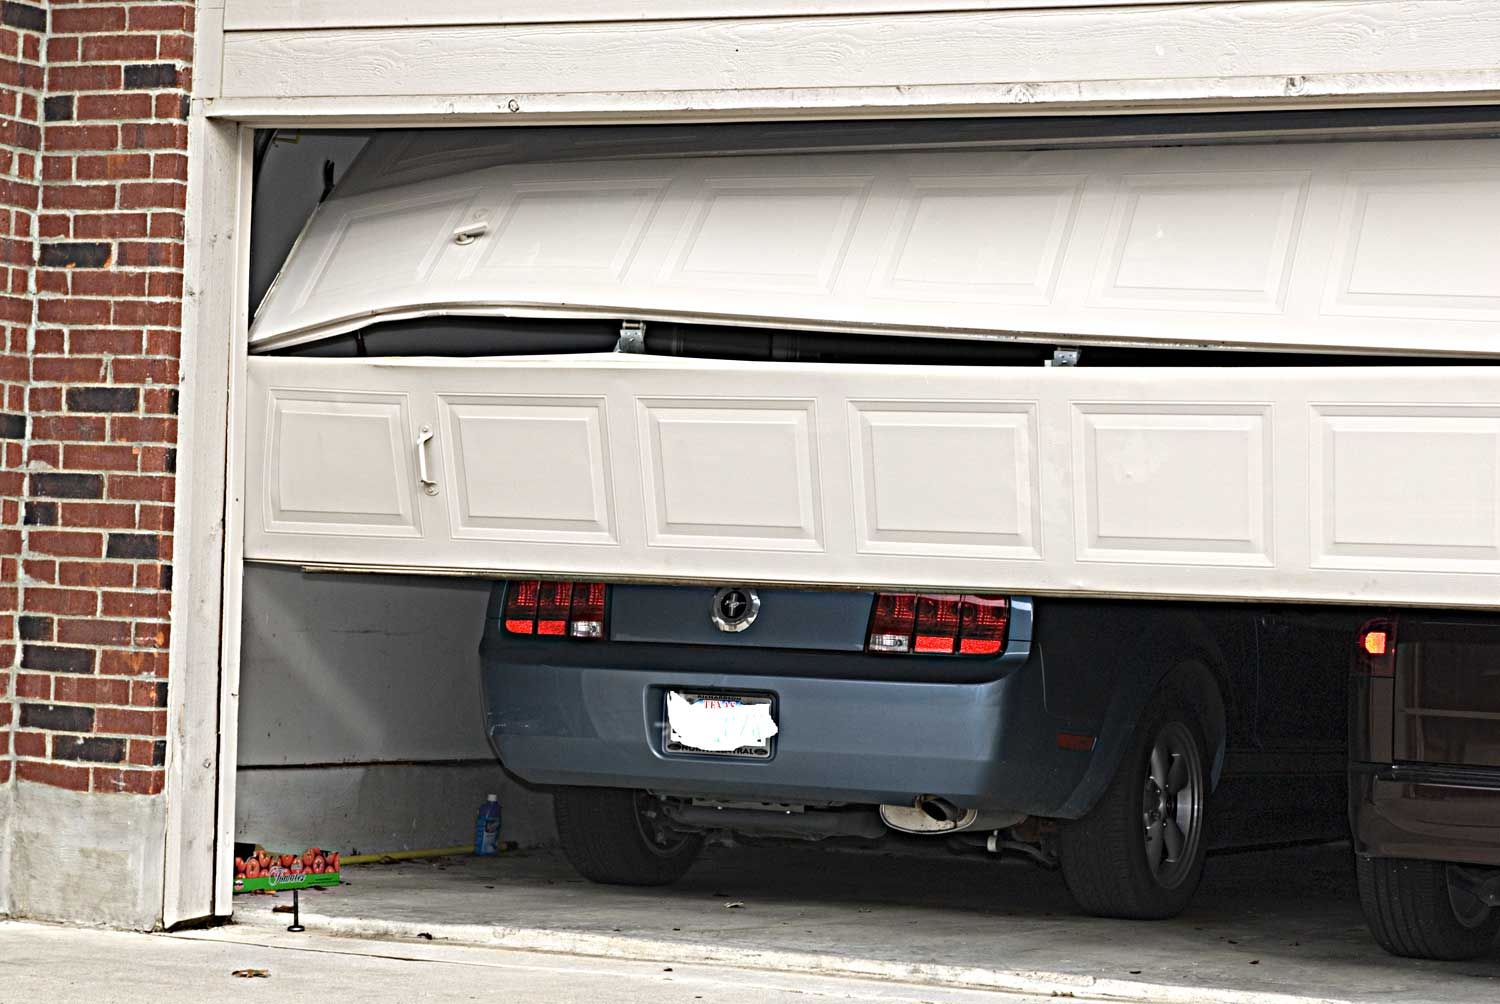 Broken garage door needing seattle property manager brooklyn garage door and gate repair in orange county and surrounding areas we provide all types of garage door service from broken springs garage track repair rubansaba